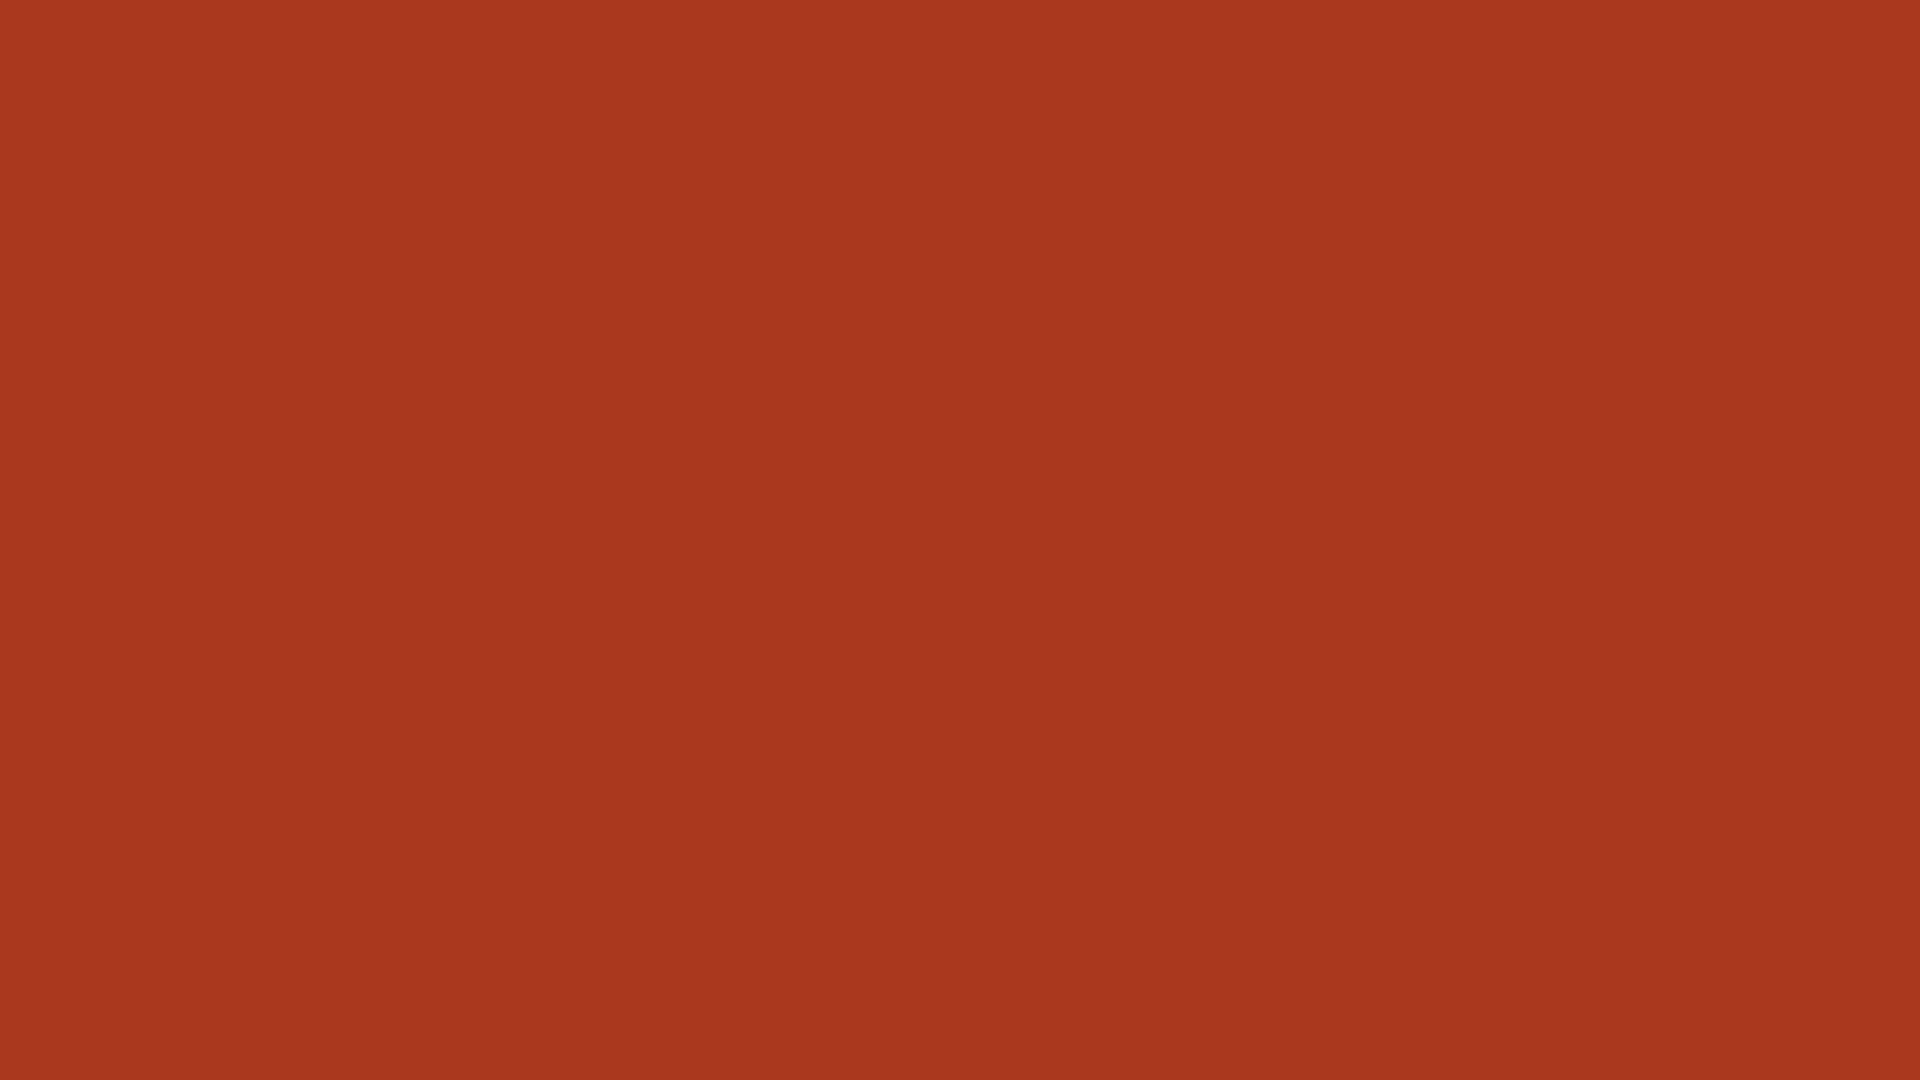 Privacy Policy >> 1920x1080 Chinese Red Solid Color Background